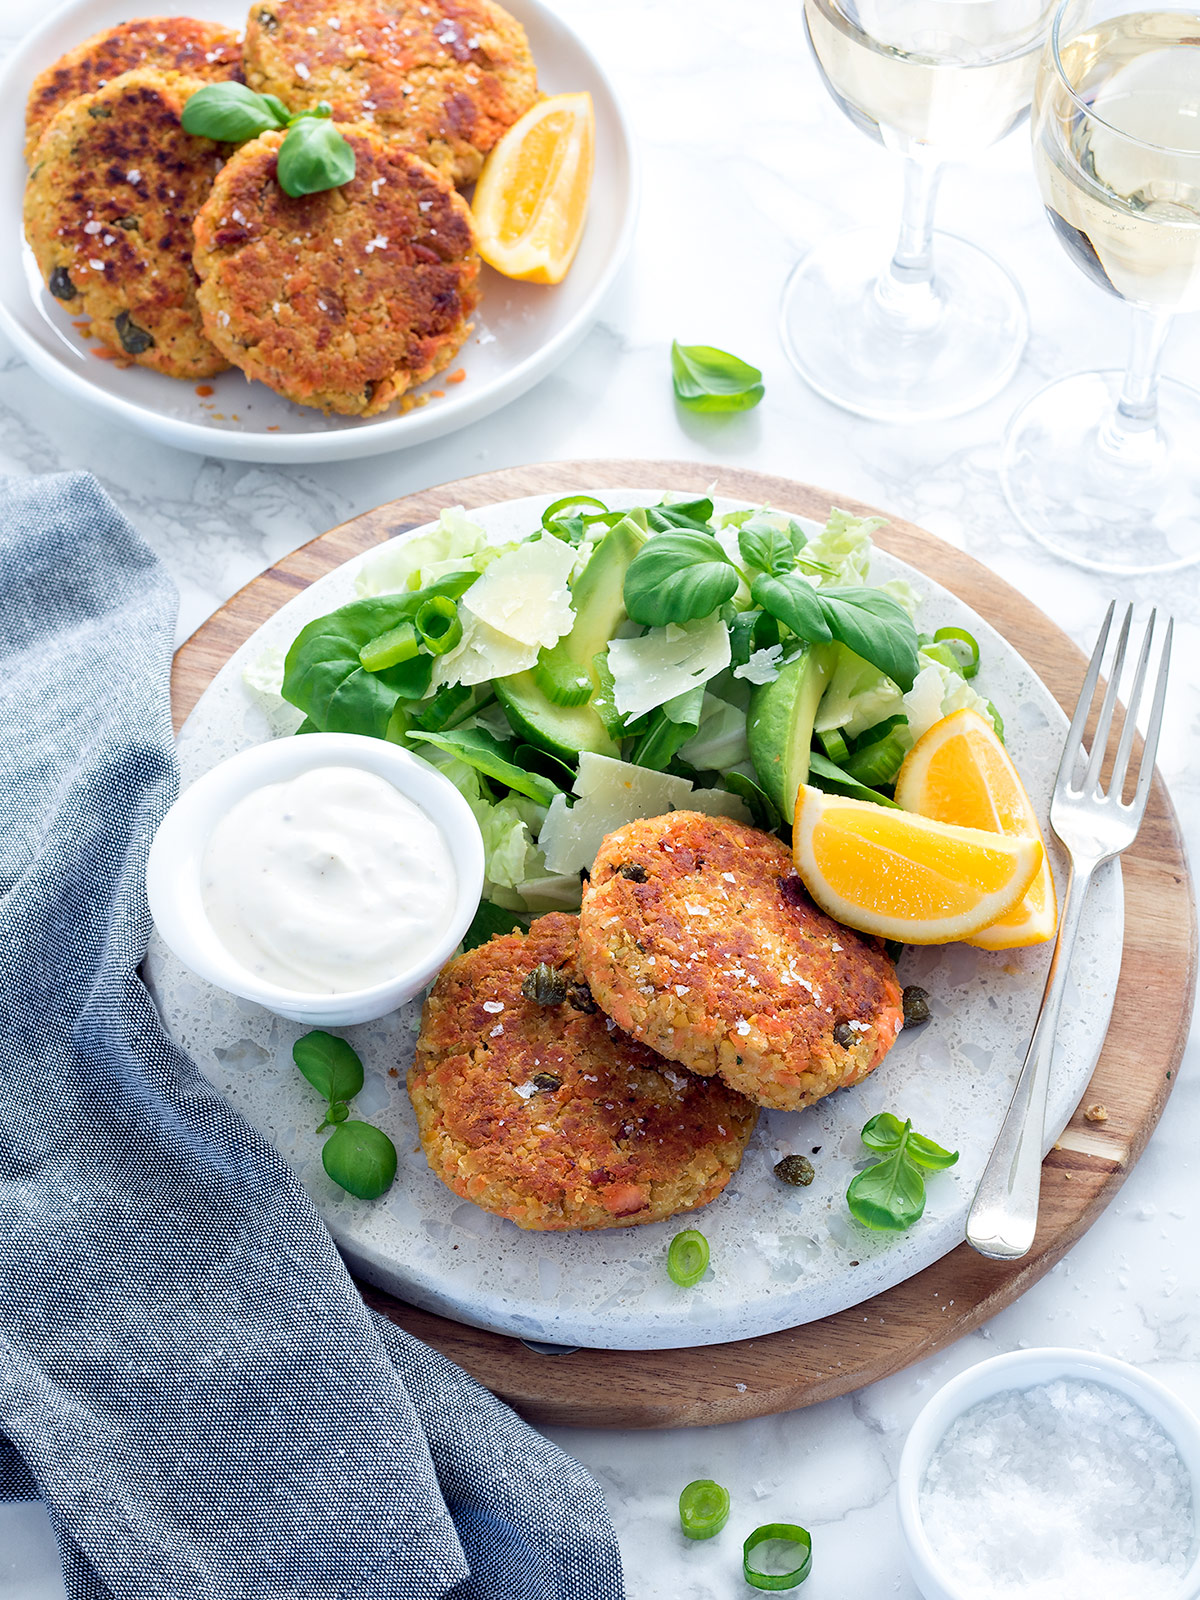 These flavoursome salmon cakes use chickpeas instead of mashed potato, making patties that are 